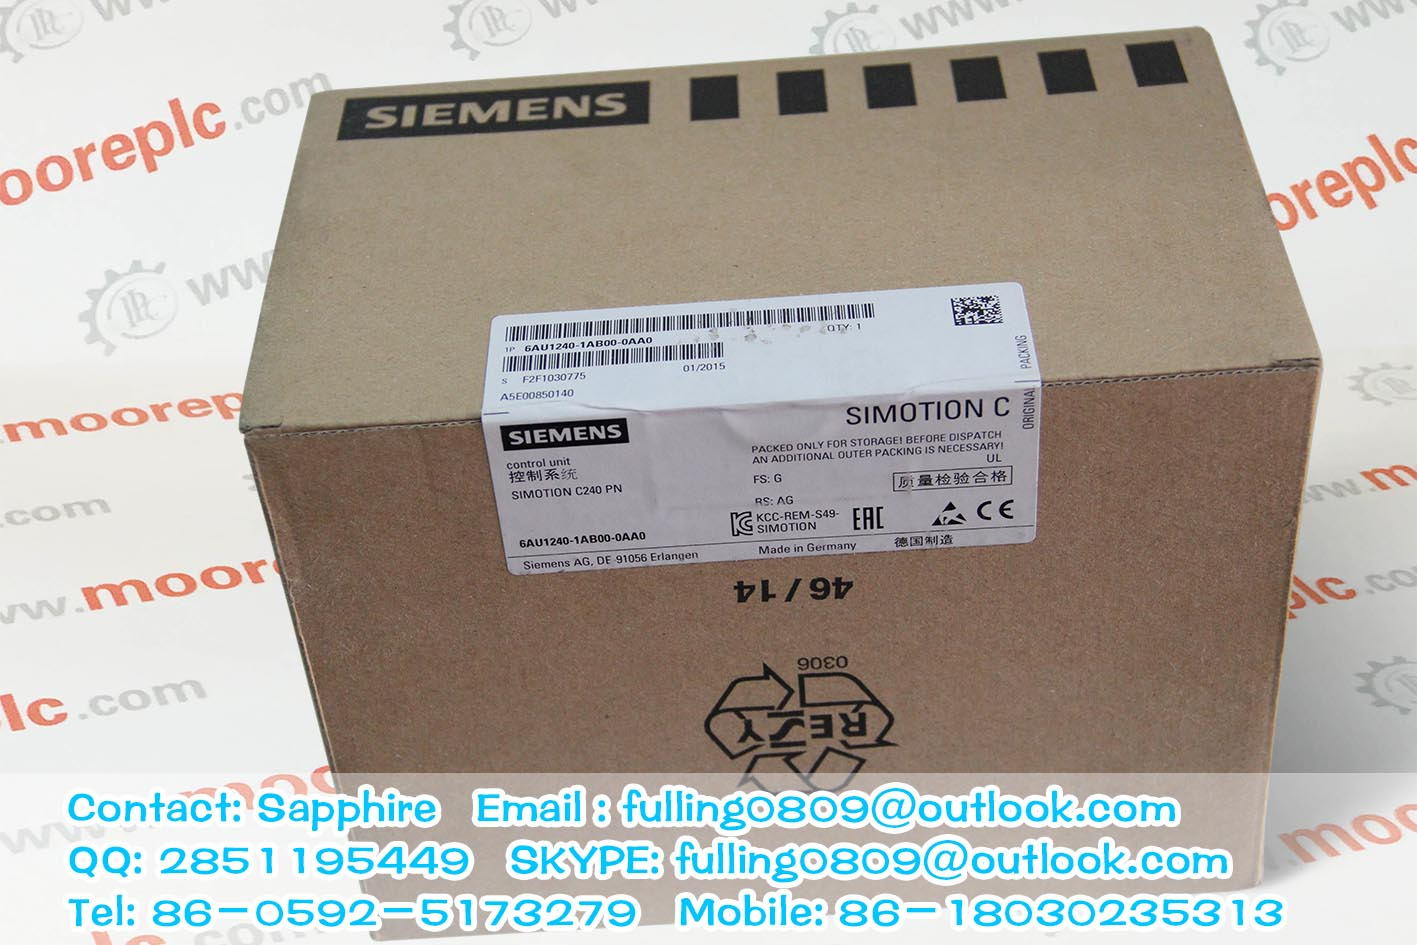 SUPPLY Siemens Moore PLC 39RTMCAN